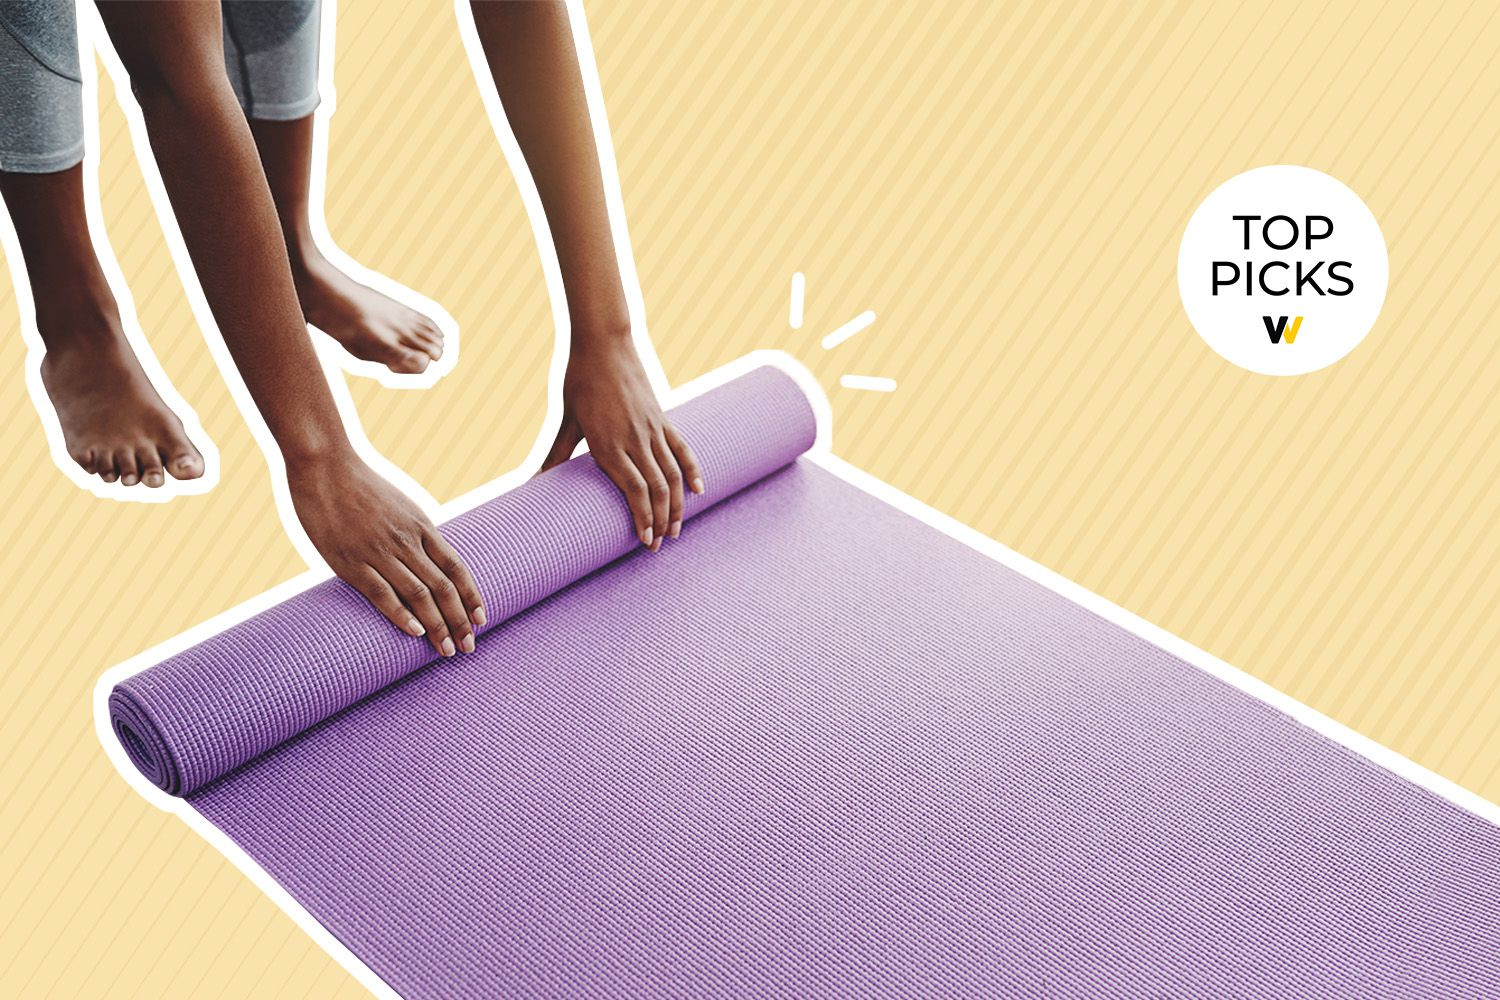 Blue TADAMI Yoga Mat,All Purpose Yoga Workout Mat,Comfort Foam Thick Yoga Exercise Mat Eco Friendly Non Slip Lose Weight Pad Fitness Exercise Mat for Home Gym Yoga,Pilates,Floor Exercises